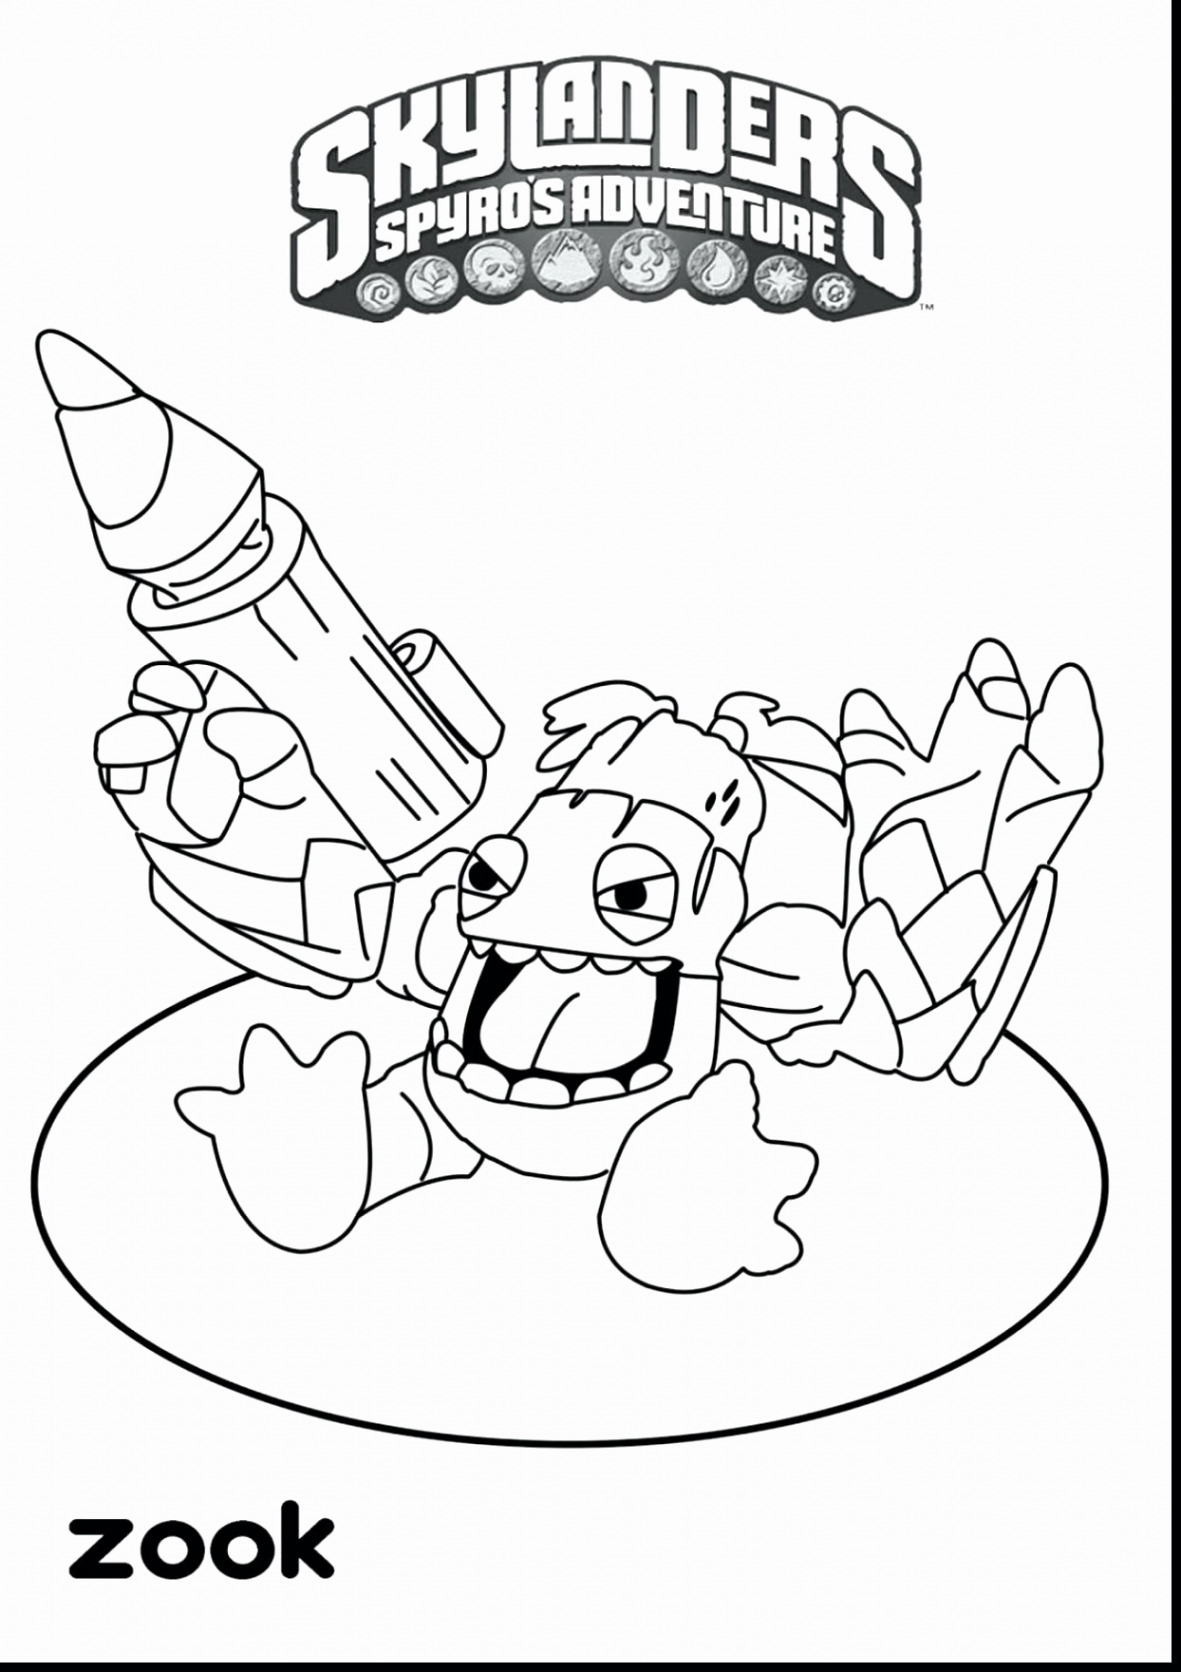 coloring pages i can print Collection-Christmas Coloring Pages that You Can Print 18-e